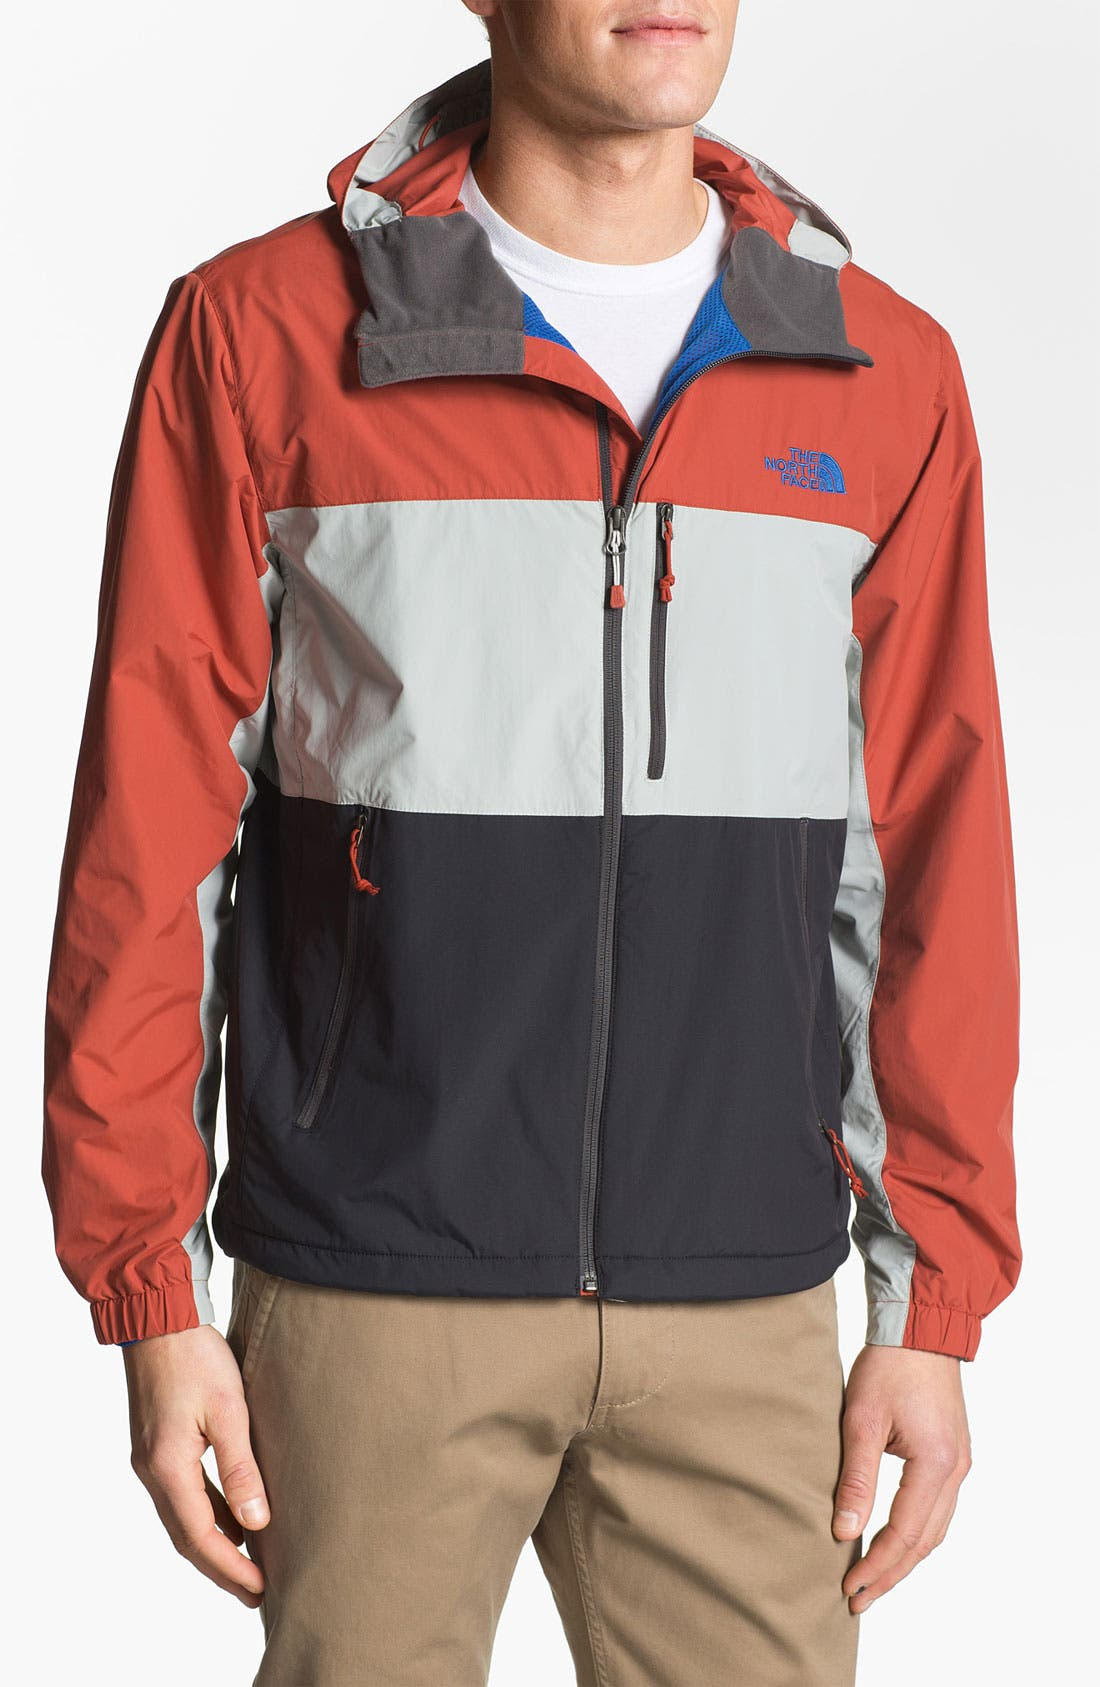 Alternate Image 1 Selected - The North Face 'Atmosphere' Tricolor Windbreaker